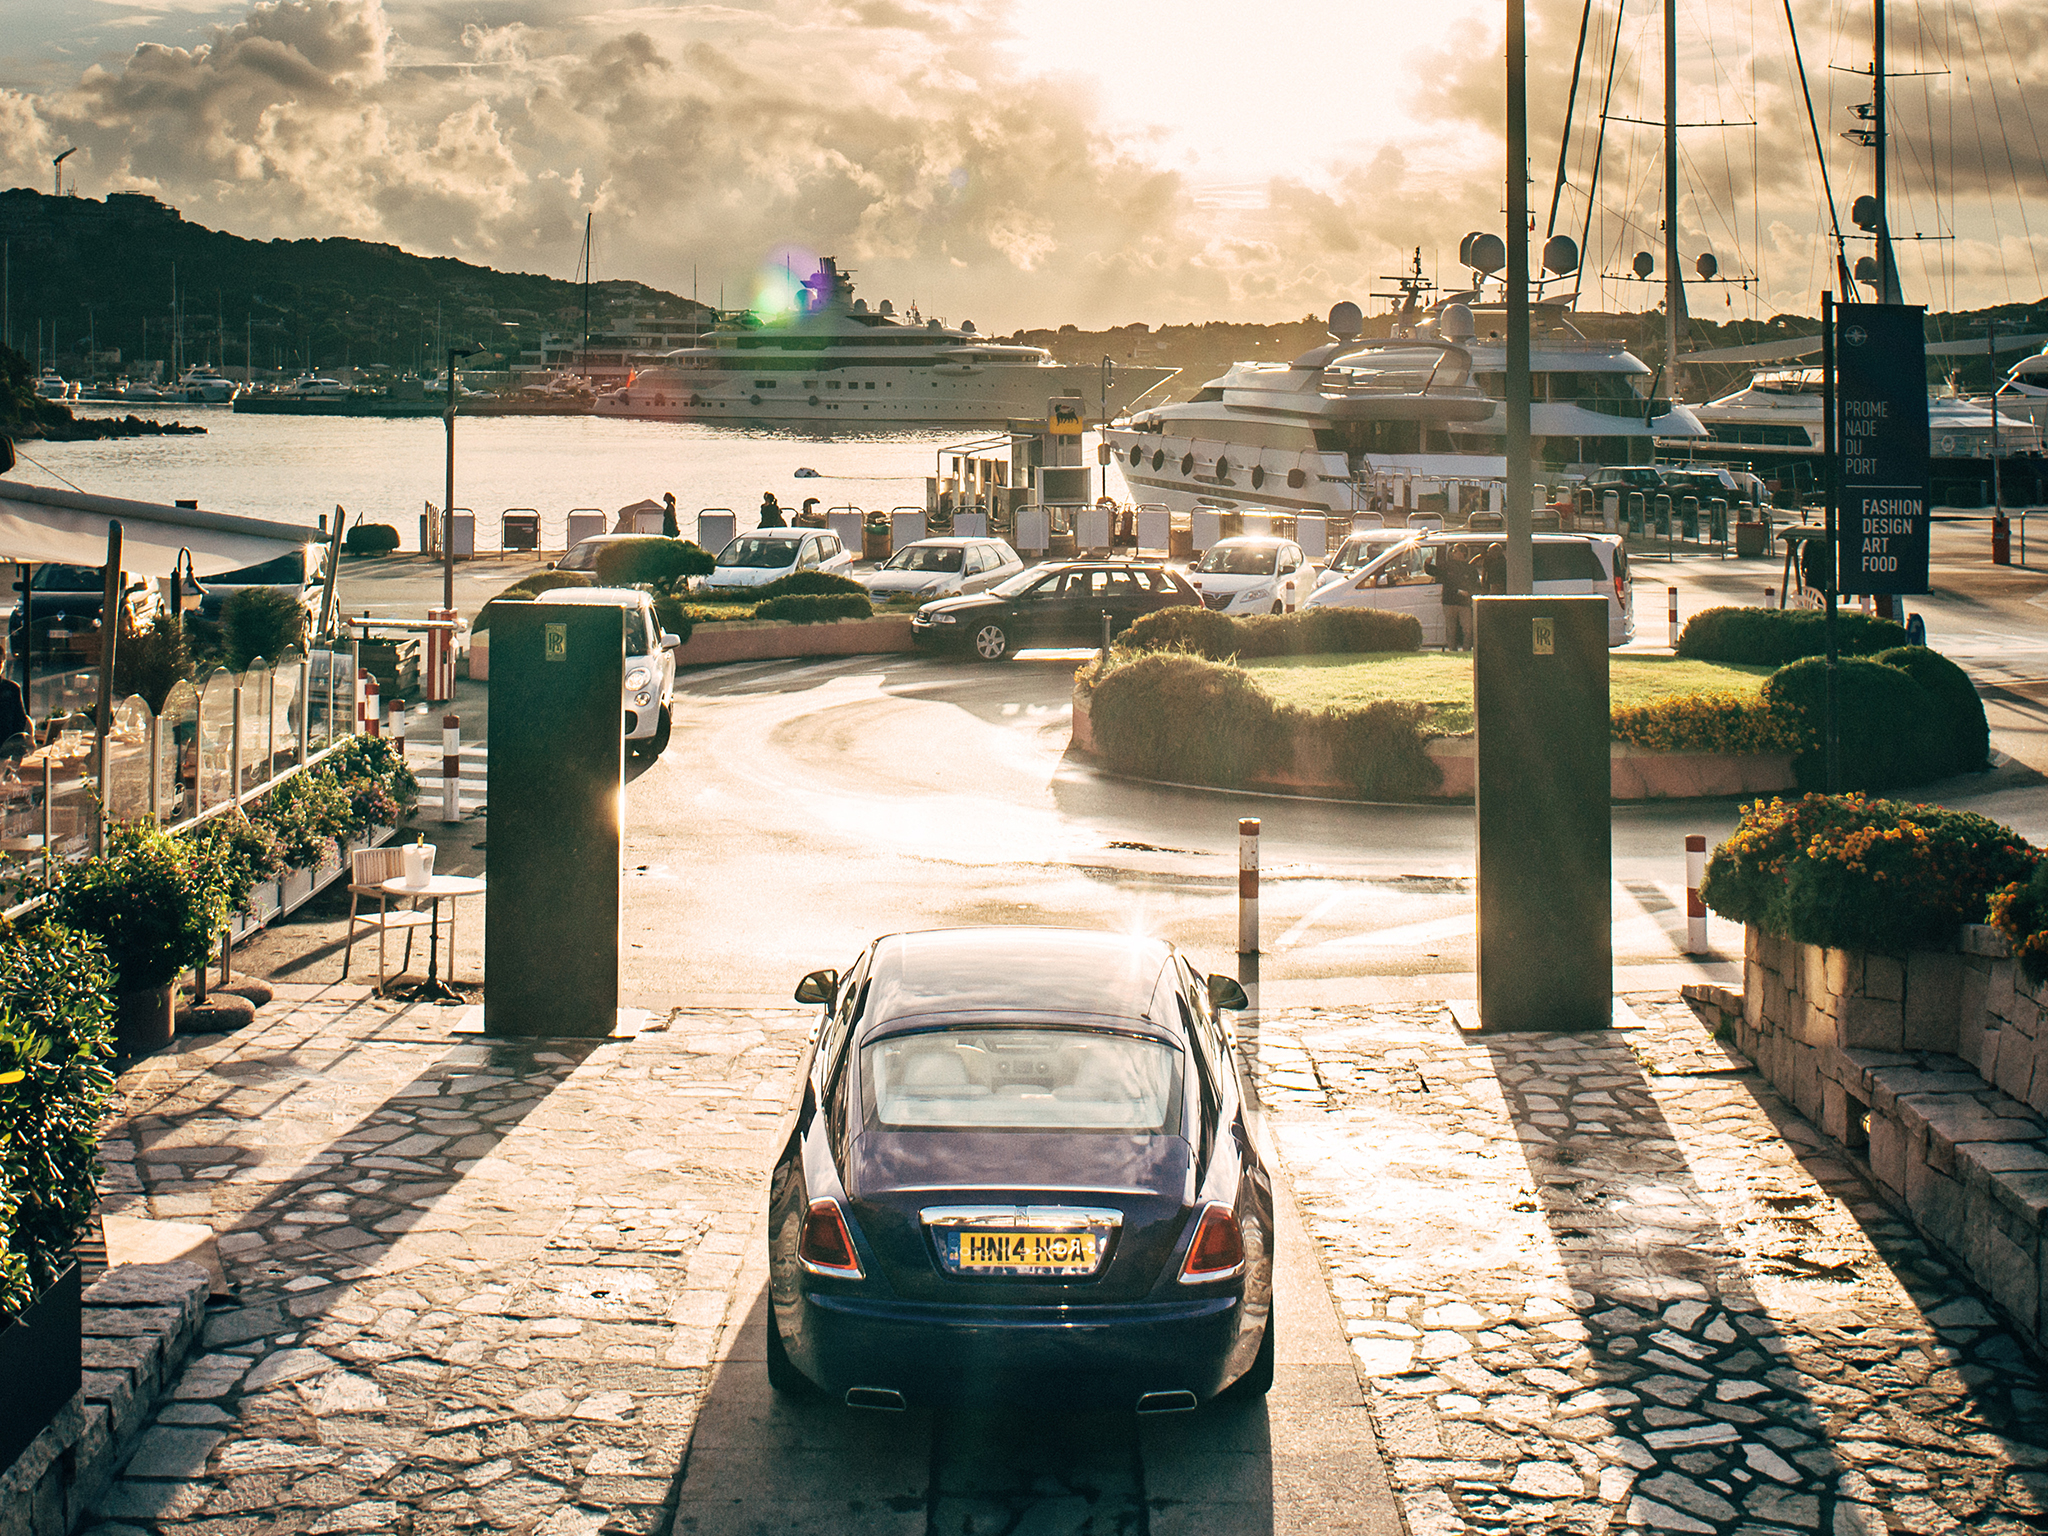 Rolls Royce opens a Summer Showroom in Porto Cervo